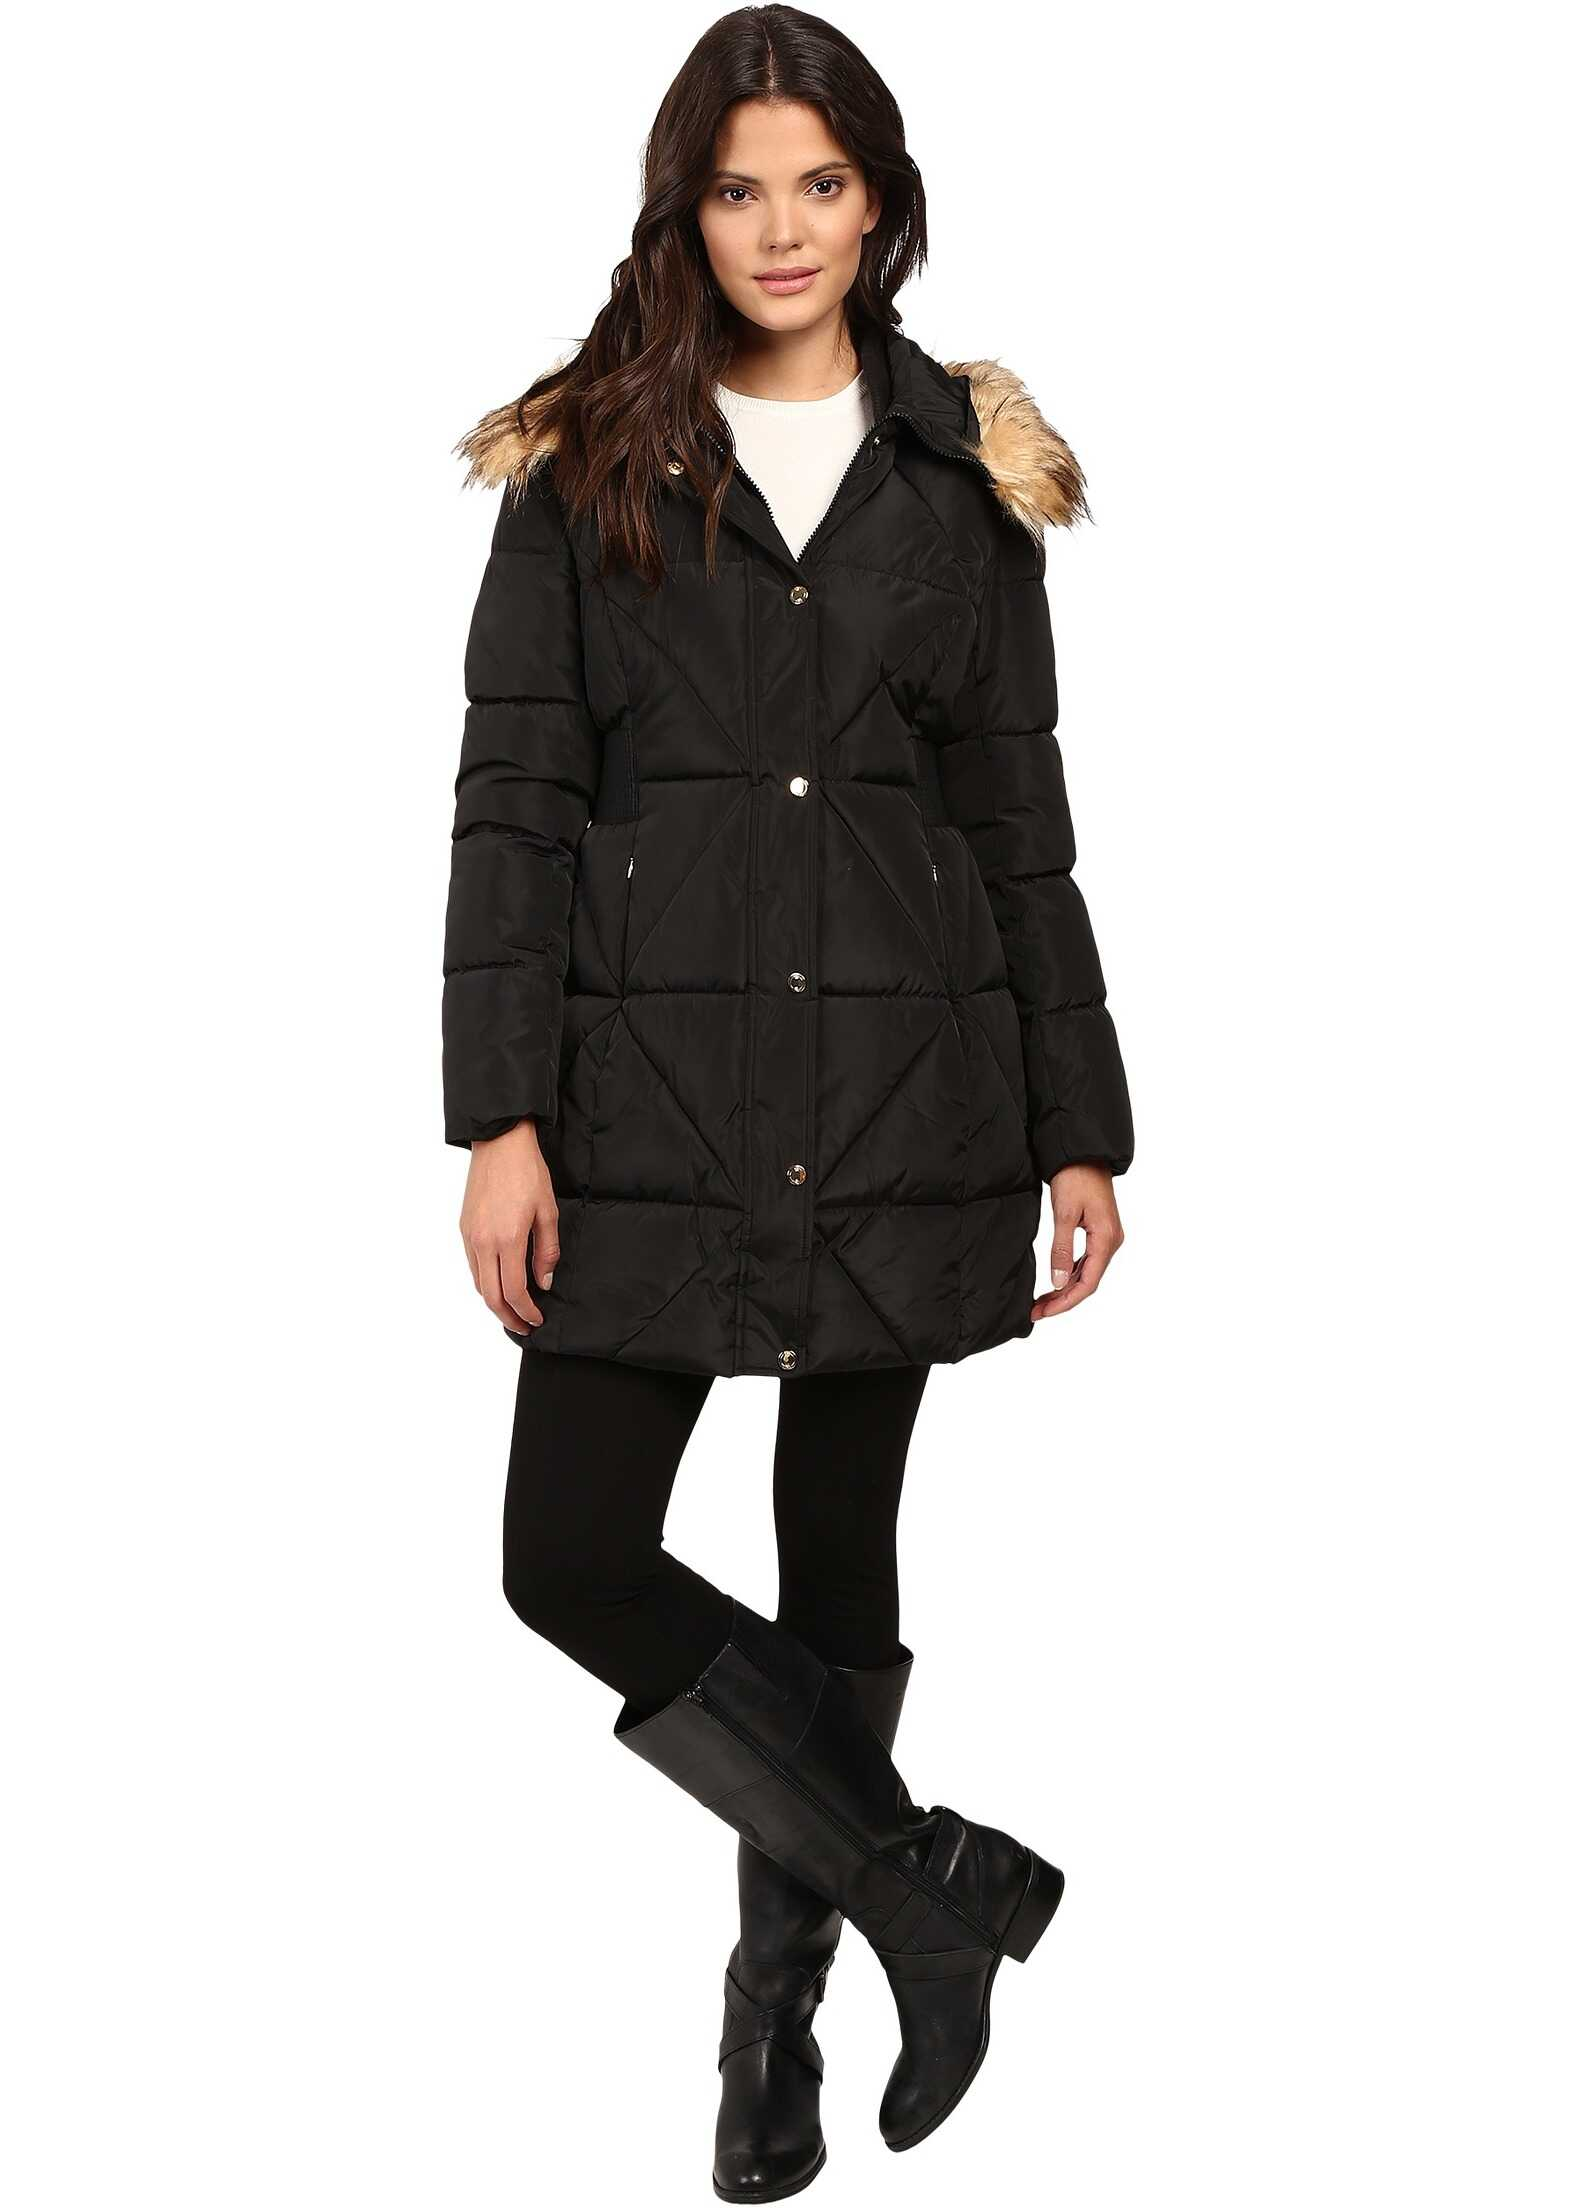 Jessica Simpson Cinched Waist Puffer w/ Hood and Removable Faux Fur Black